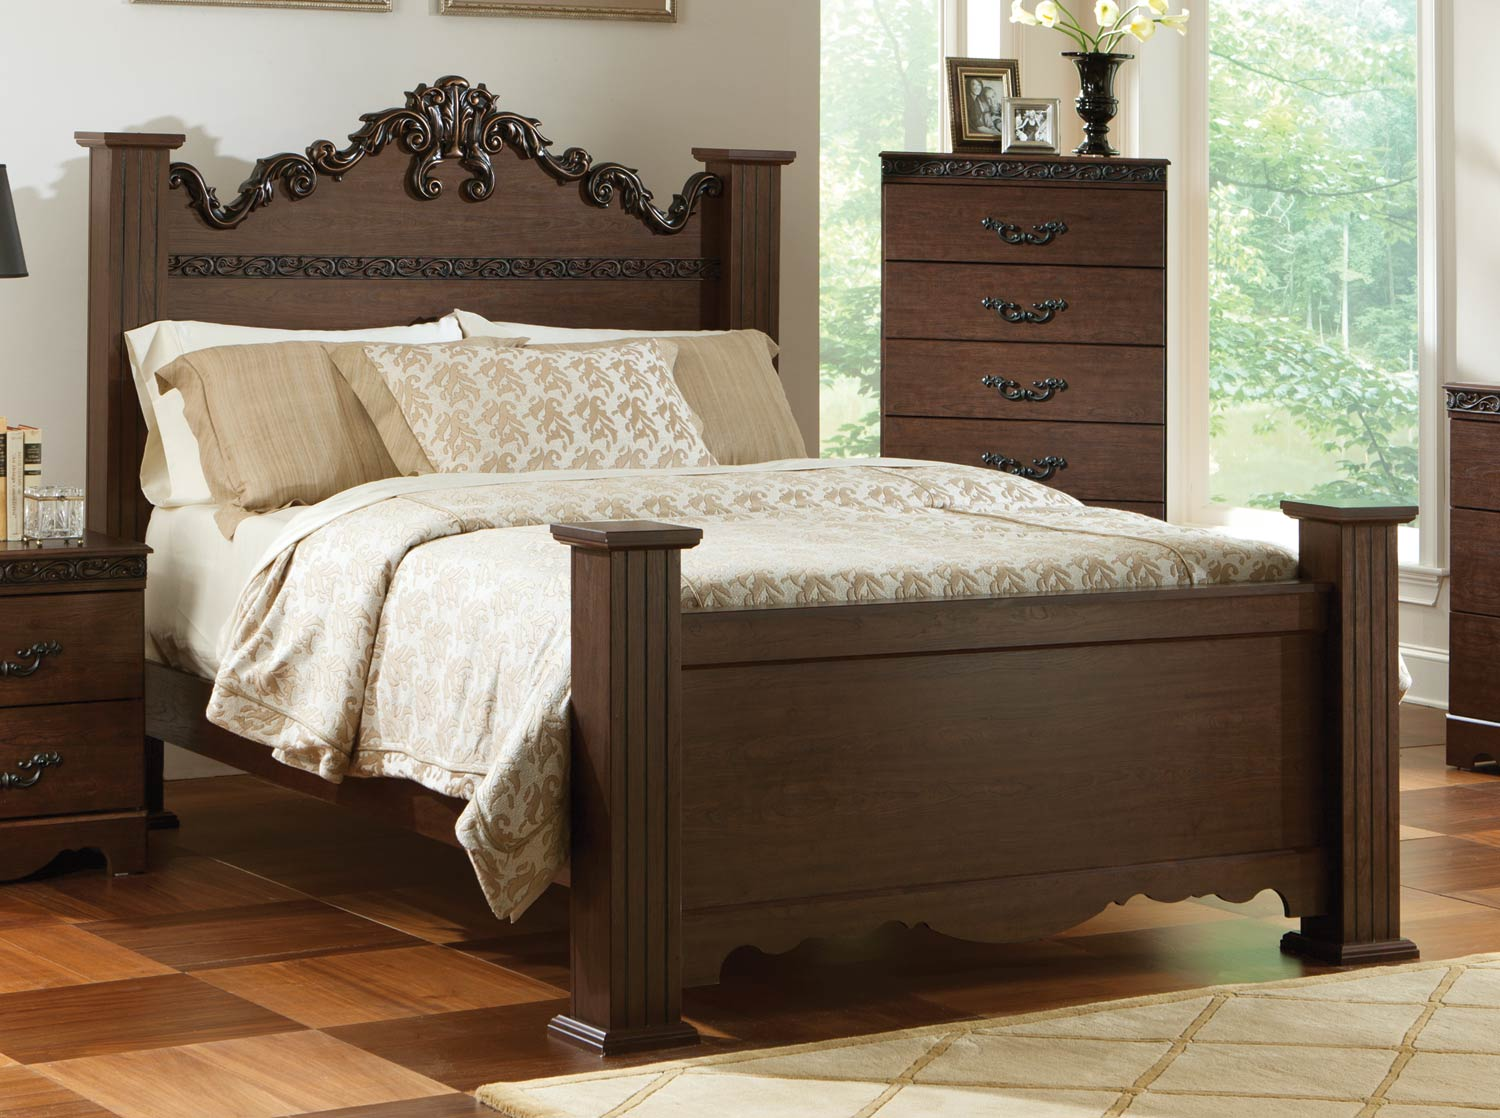 Kith Furniture Knollwood Poster Bed